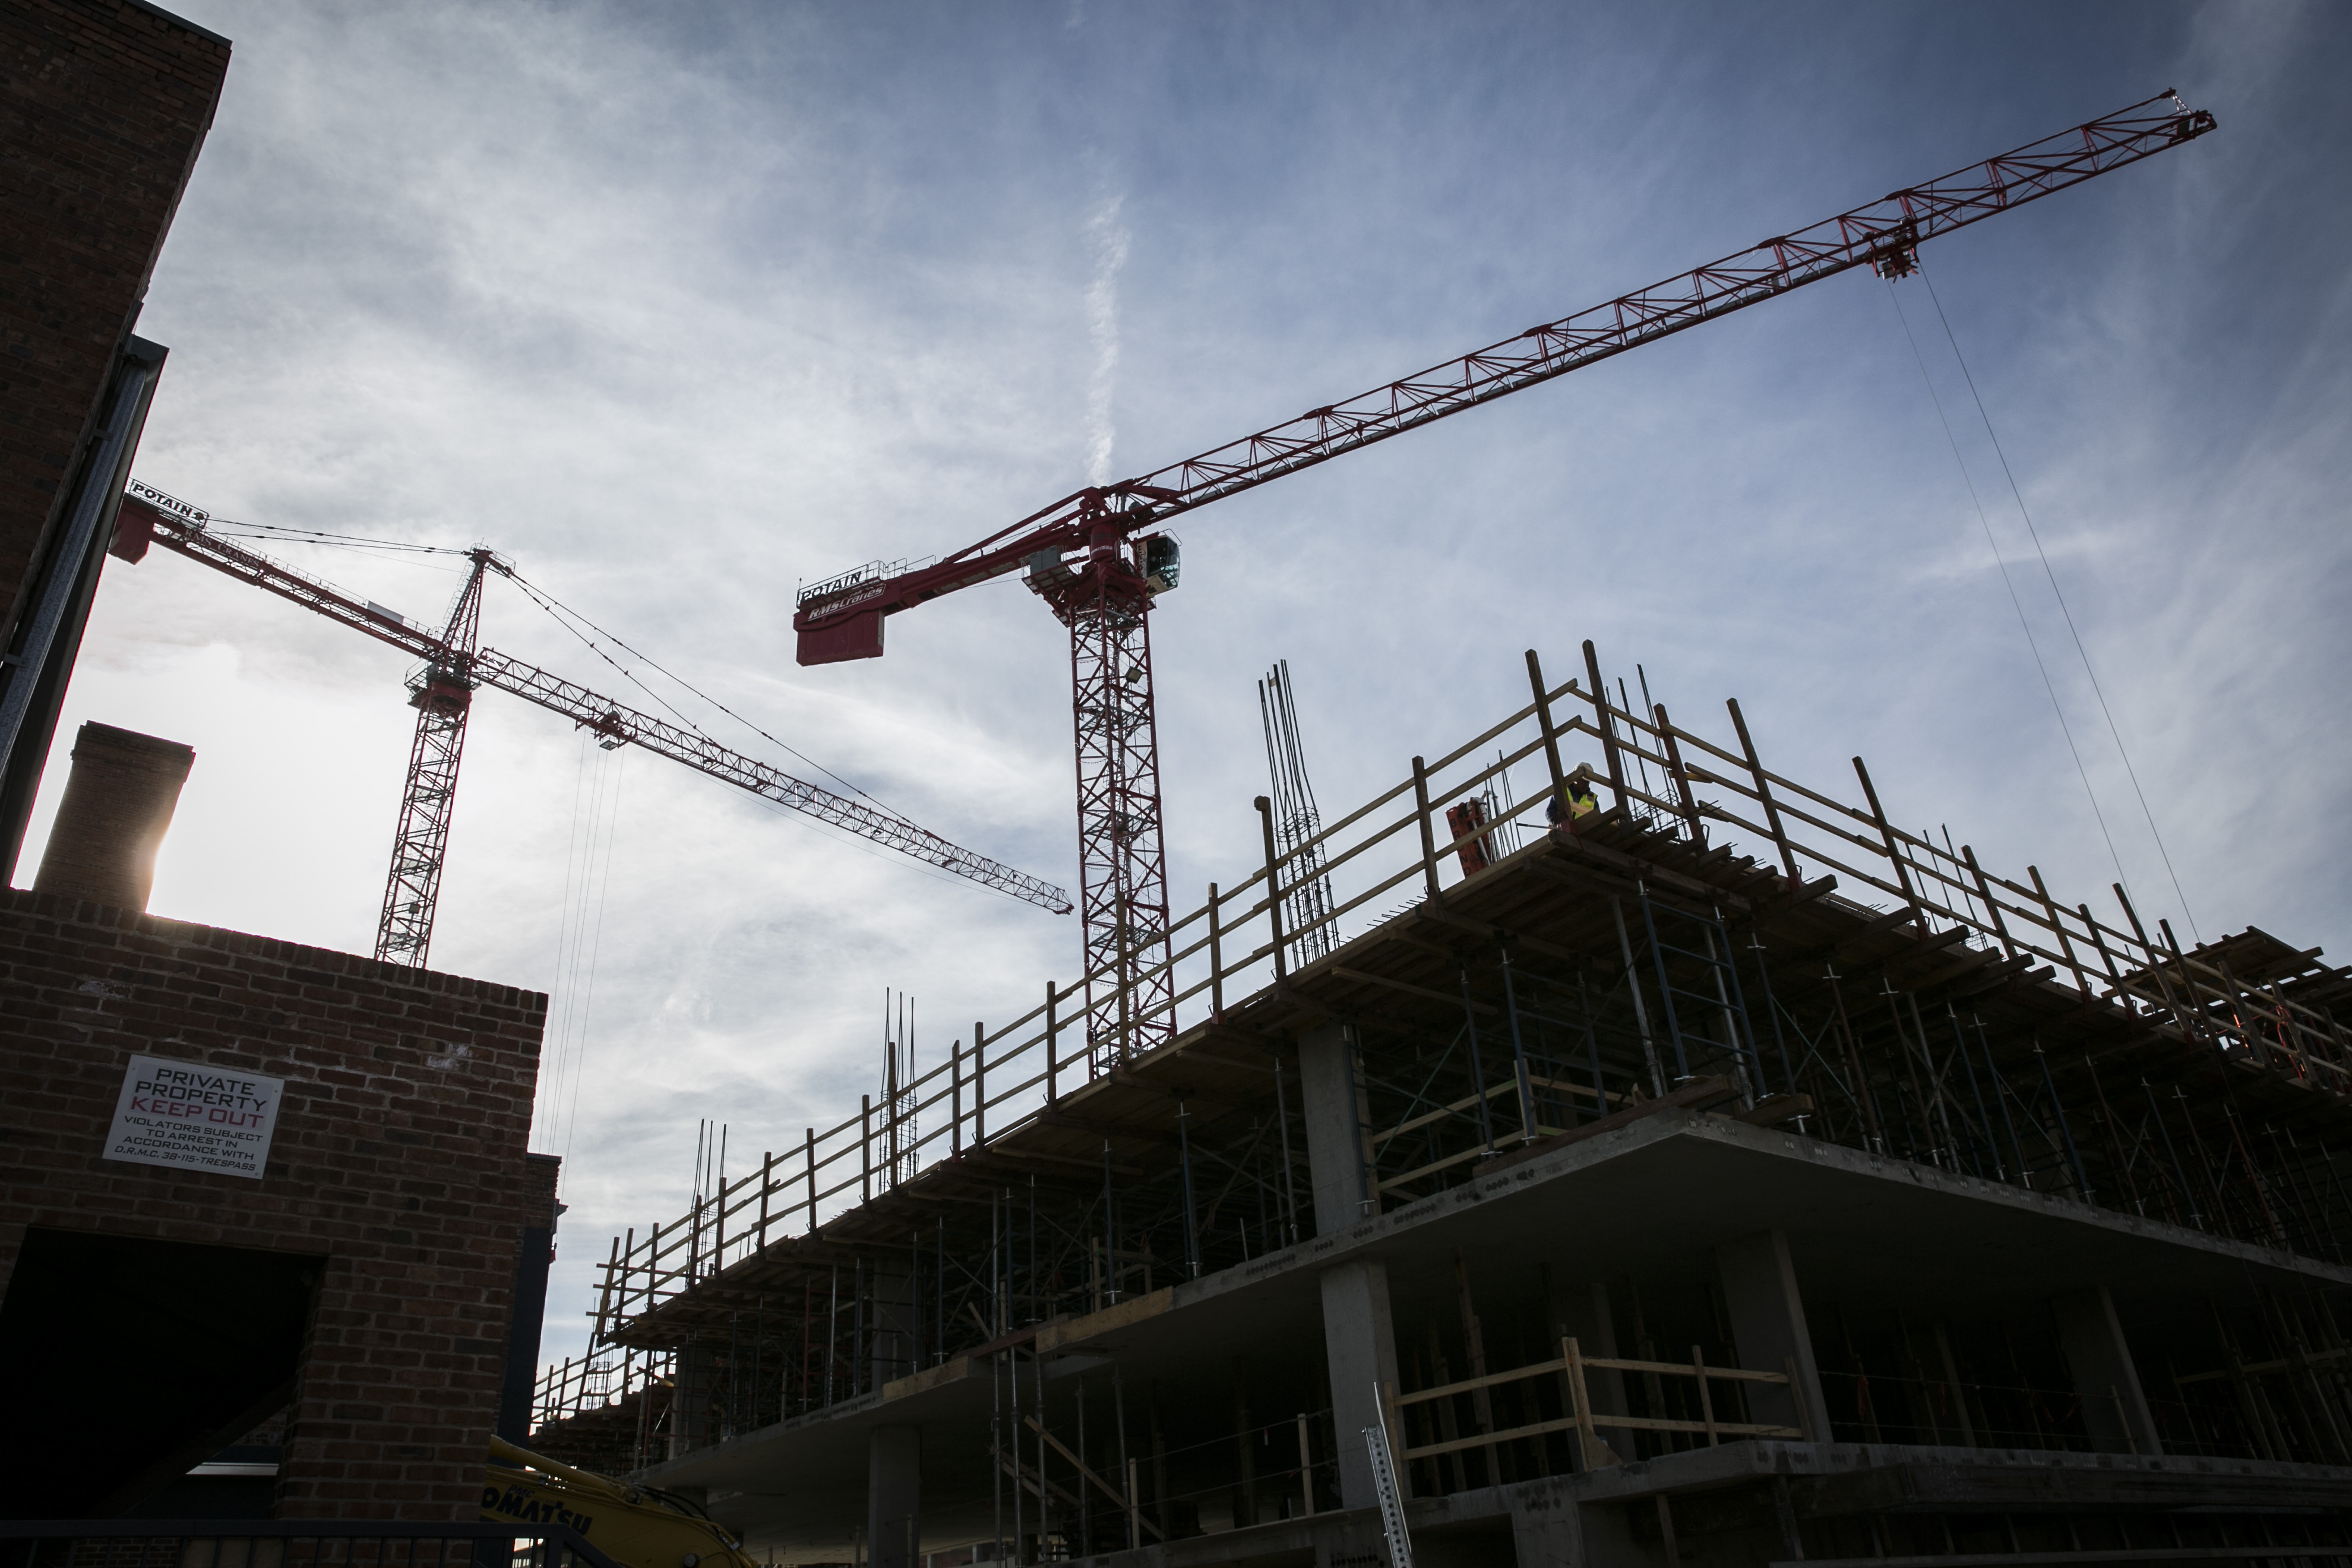 <p>Construction cranes stand over Wazee Street in downtown Denver on Thursday, Feb. 18, 2016. The site will house a 170-room hotel and six-story office project.</p>